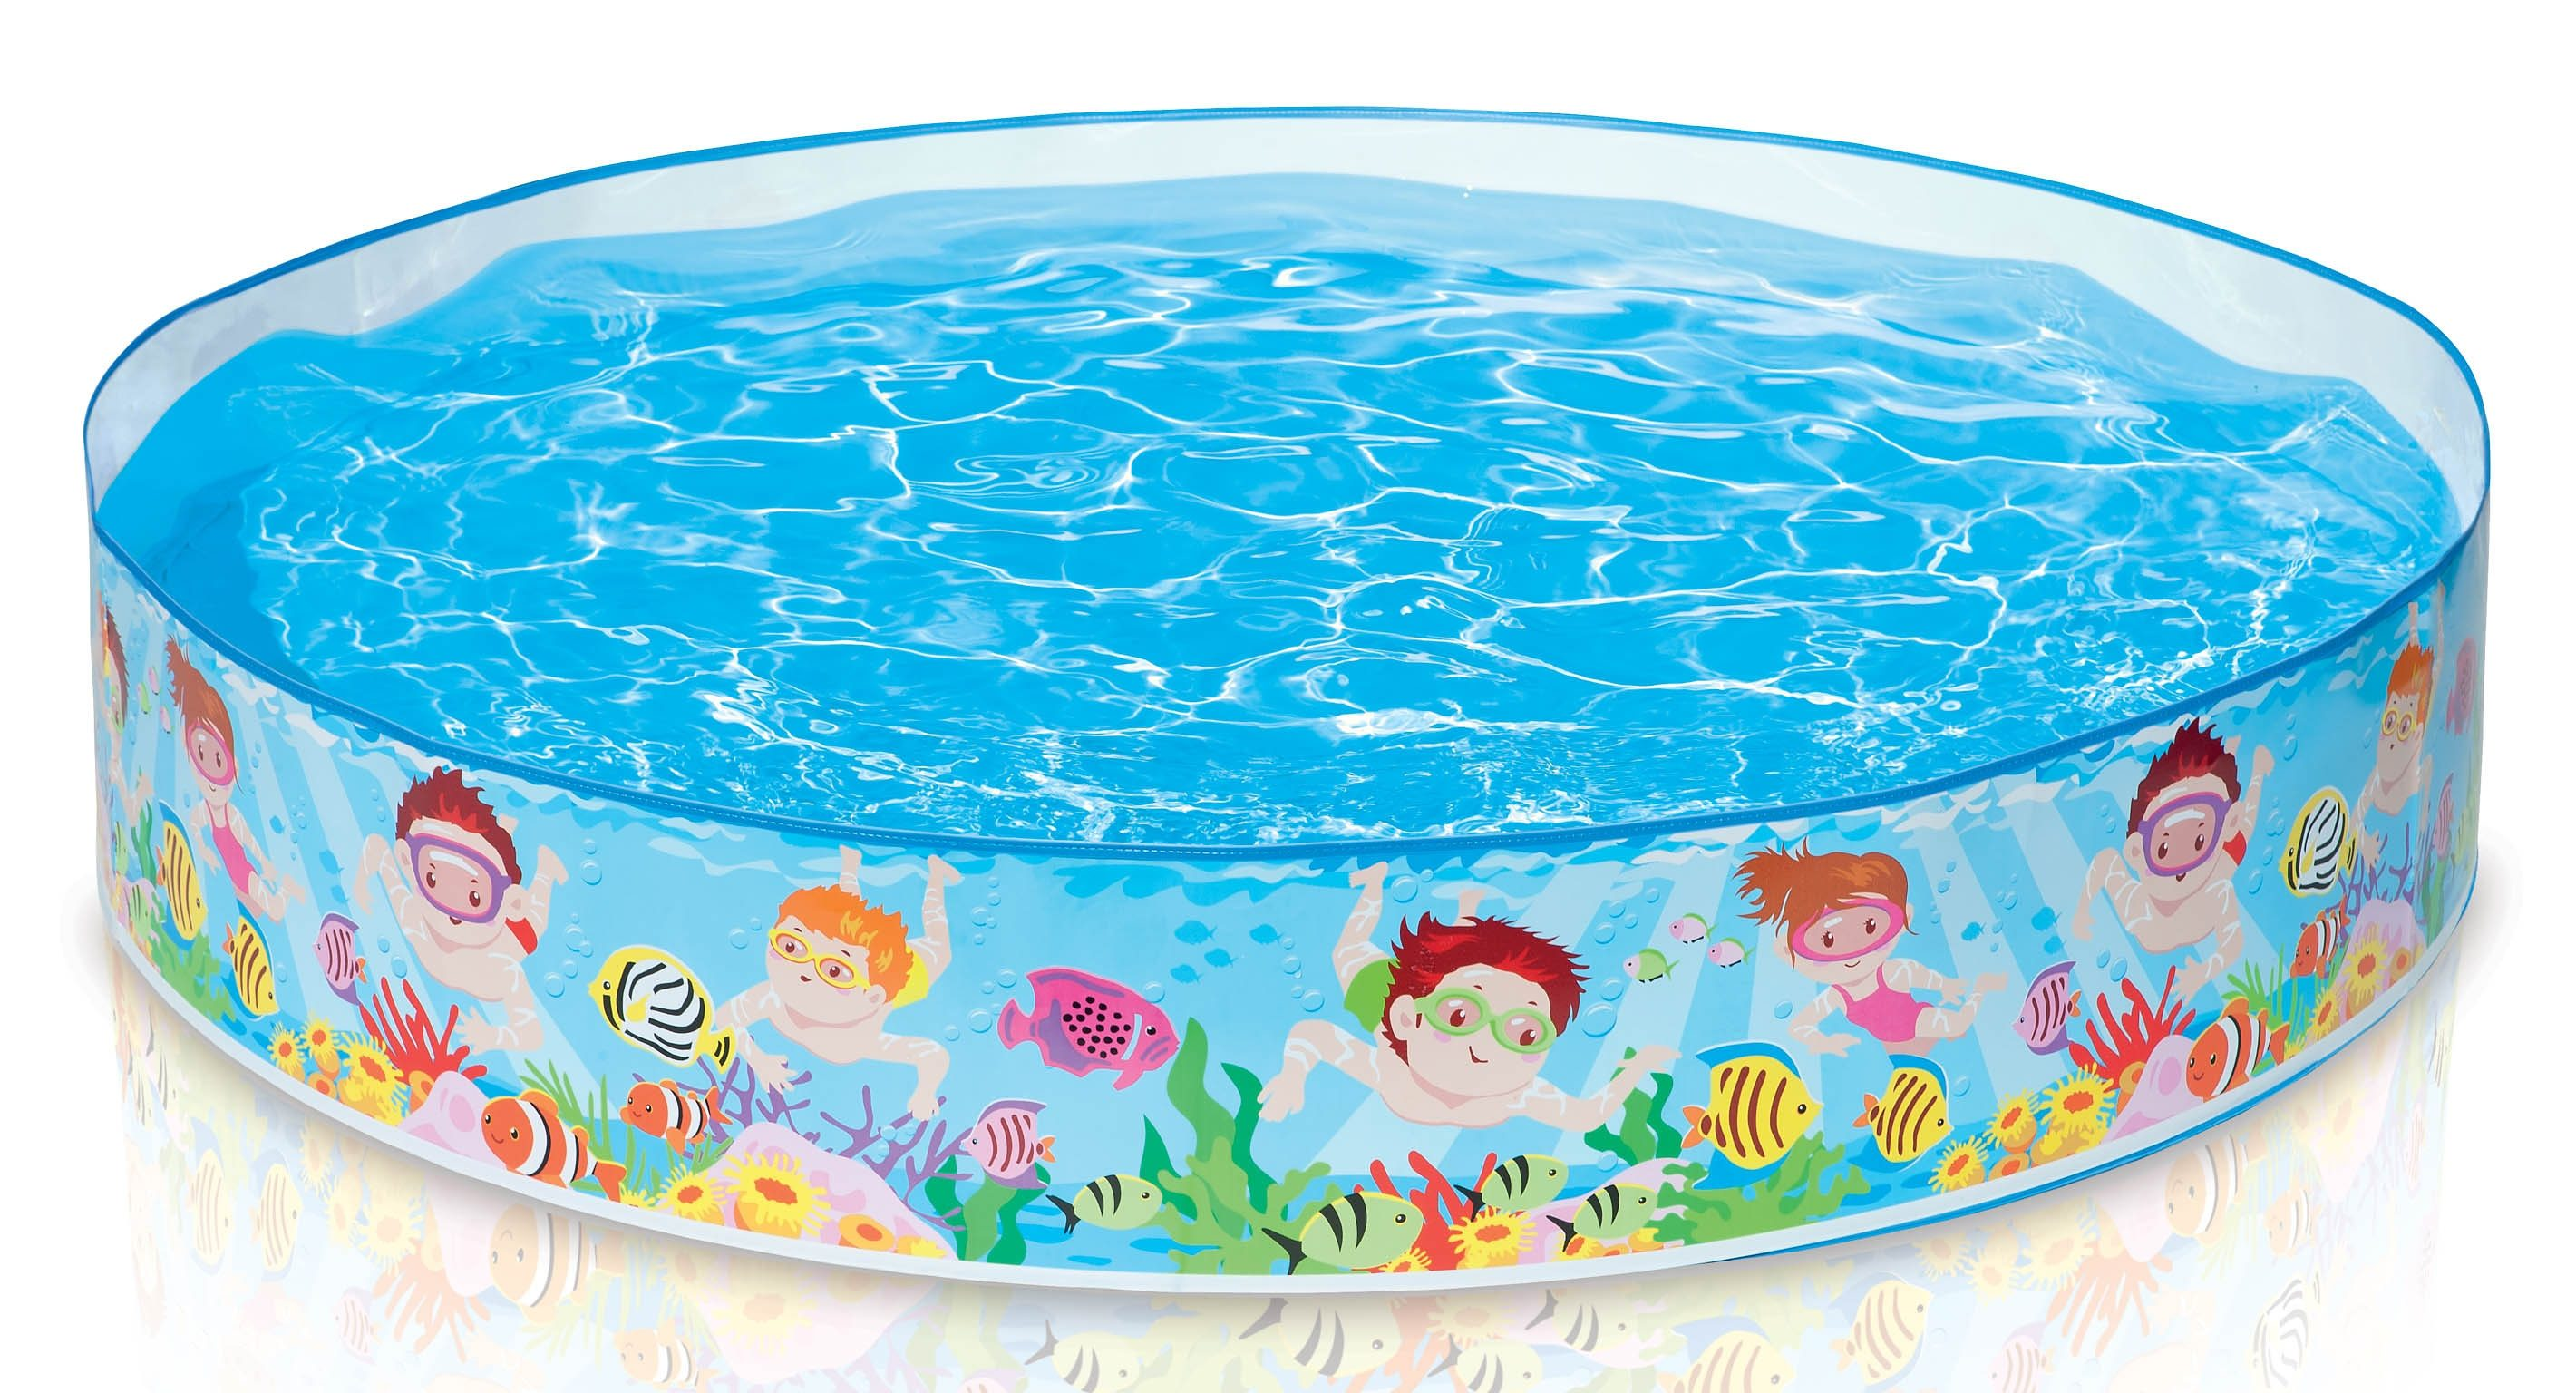 Intex Snapset Kinder Pool, »Snorkel Buddies«